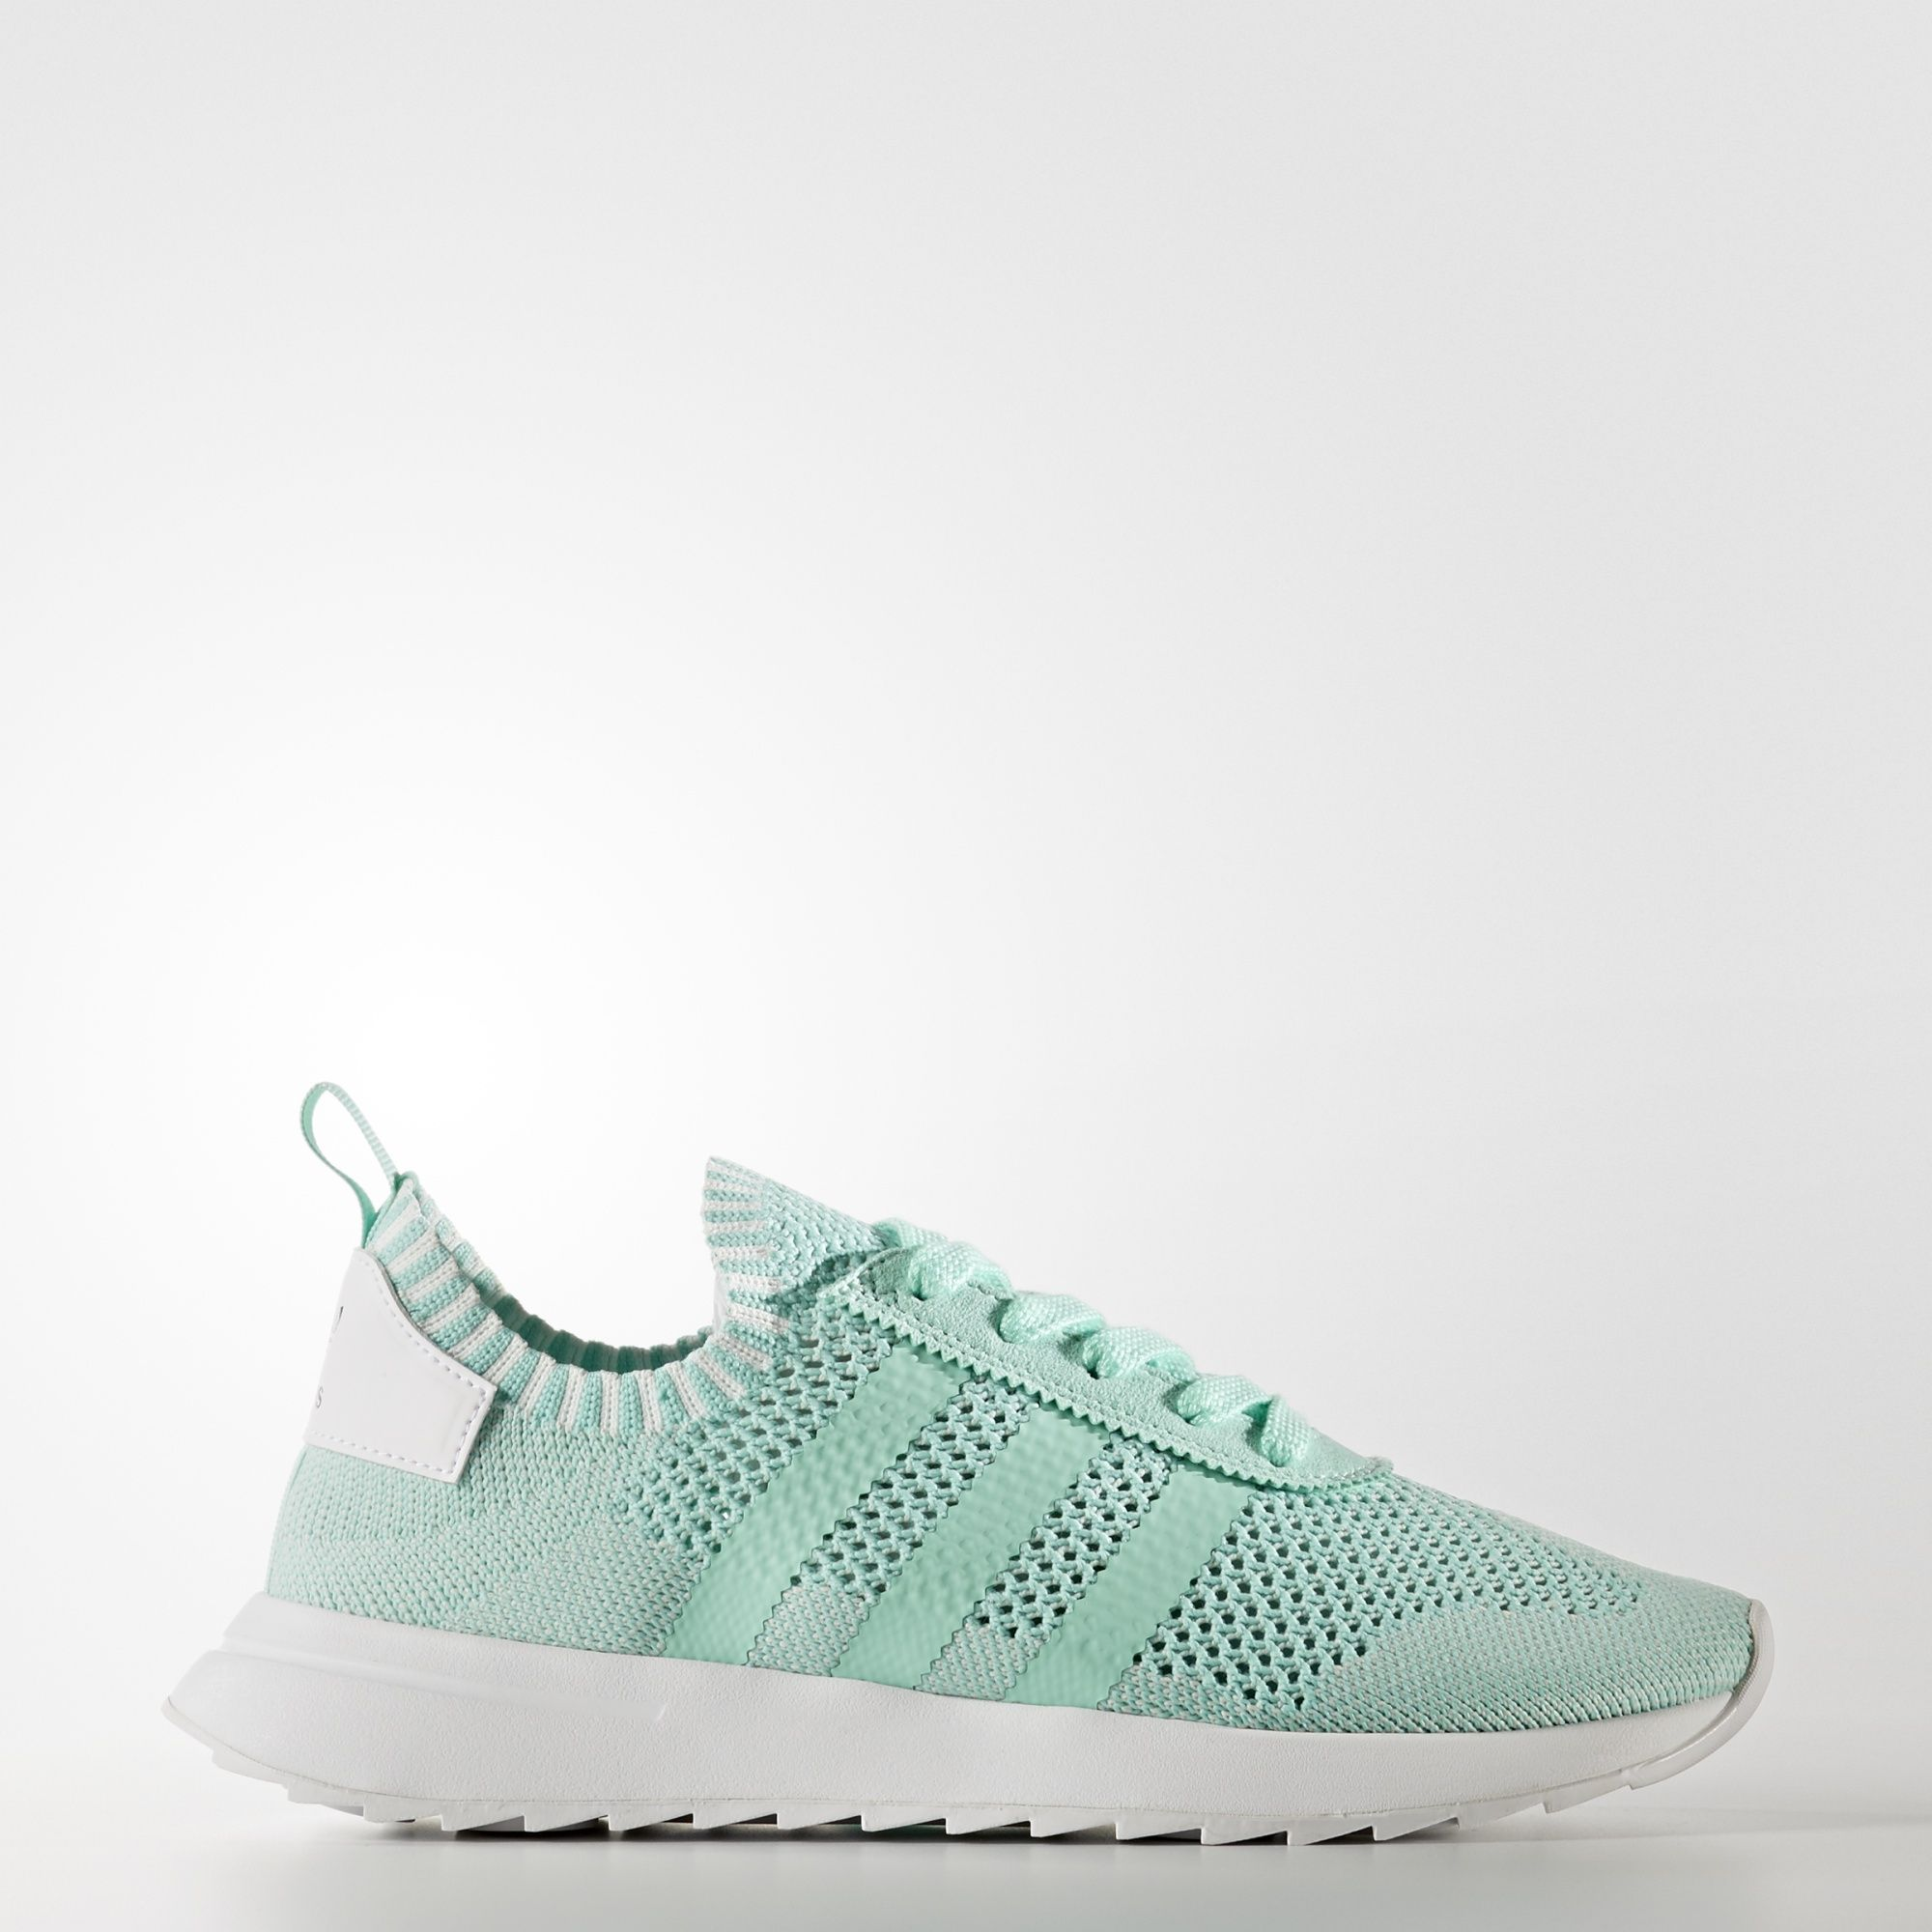 new style e6bee fd586 Adidas Womens FLB Primeknit Shoes - 140.00 (Adidas)